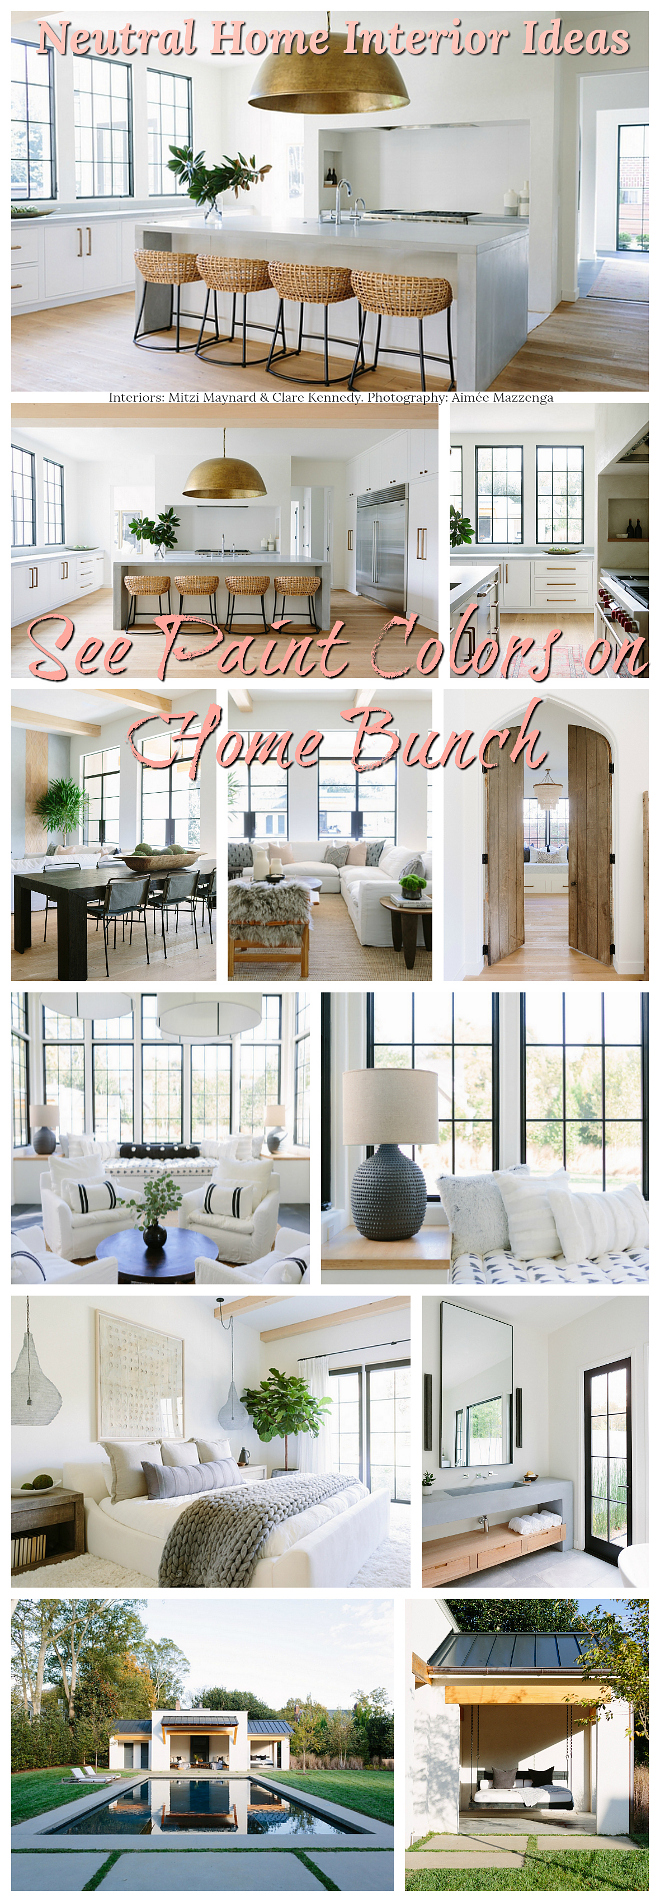 Neutral Home Interior Ideas See paint colors on Home Bunch Neutral Home Interior Ideas #NeutralHome #NeutralInteriors #NeutralinteriorIdeas